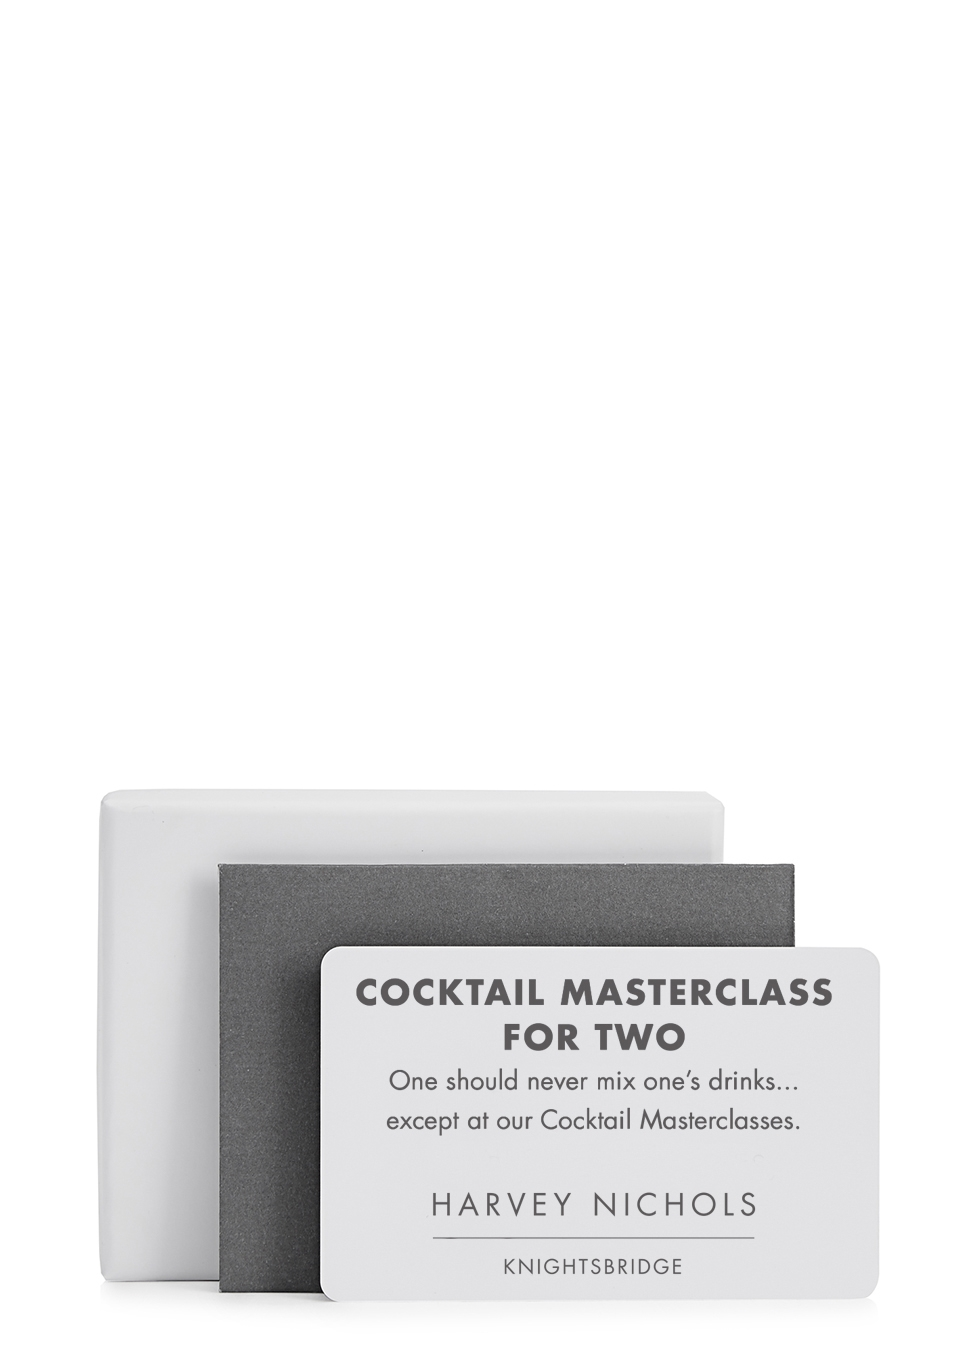 Cocktail Masterclass & Express Lunch For Two - Knightsbridge - Gift Experiences